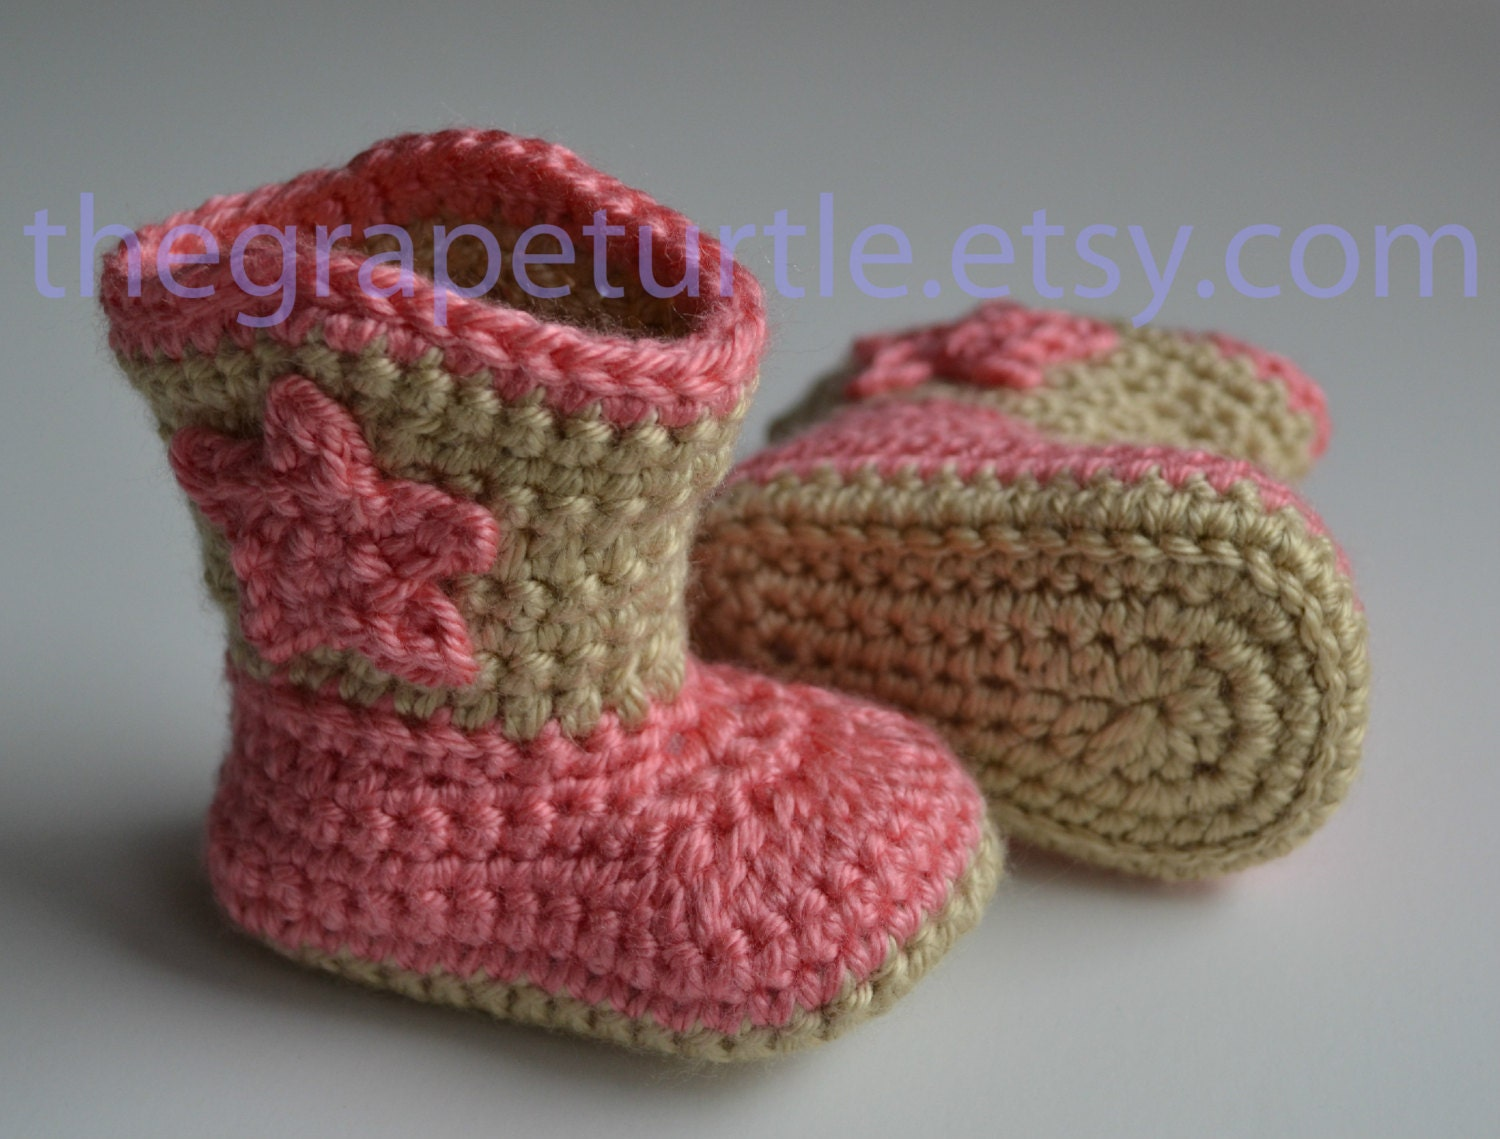 Free Crochet Patterns For Baby Girl Bonnets : Crochet Baby Cowboy Boots MADE TO ORDER You Choose Color